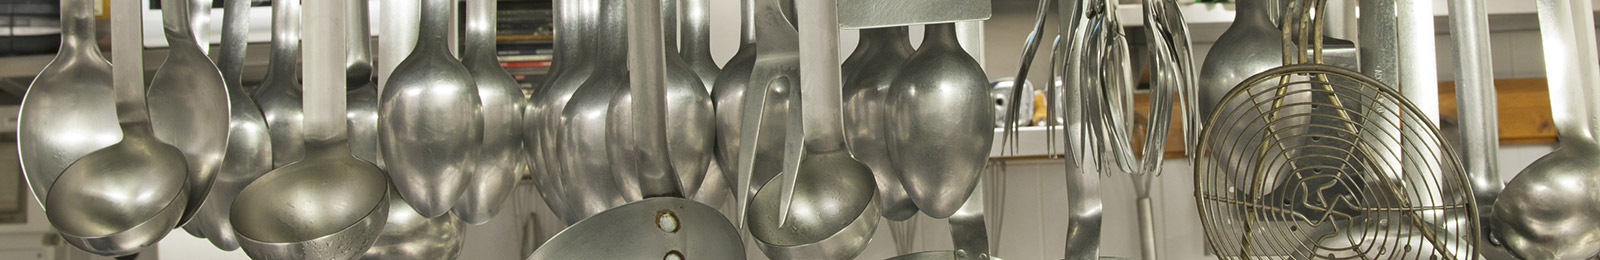 close-up of a rack of ladles and serving spoons